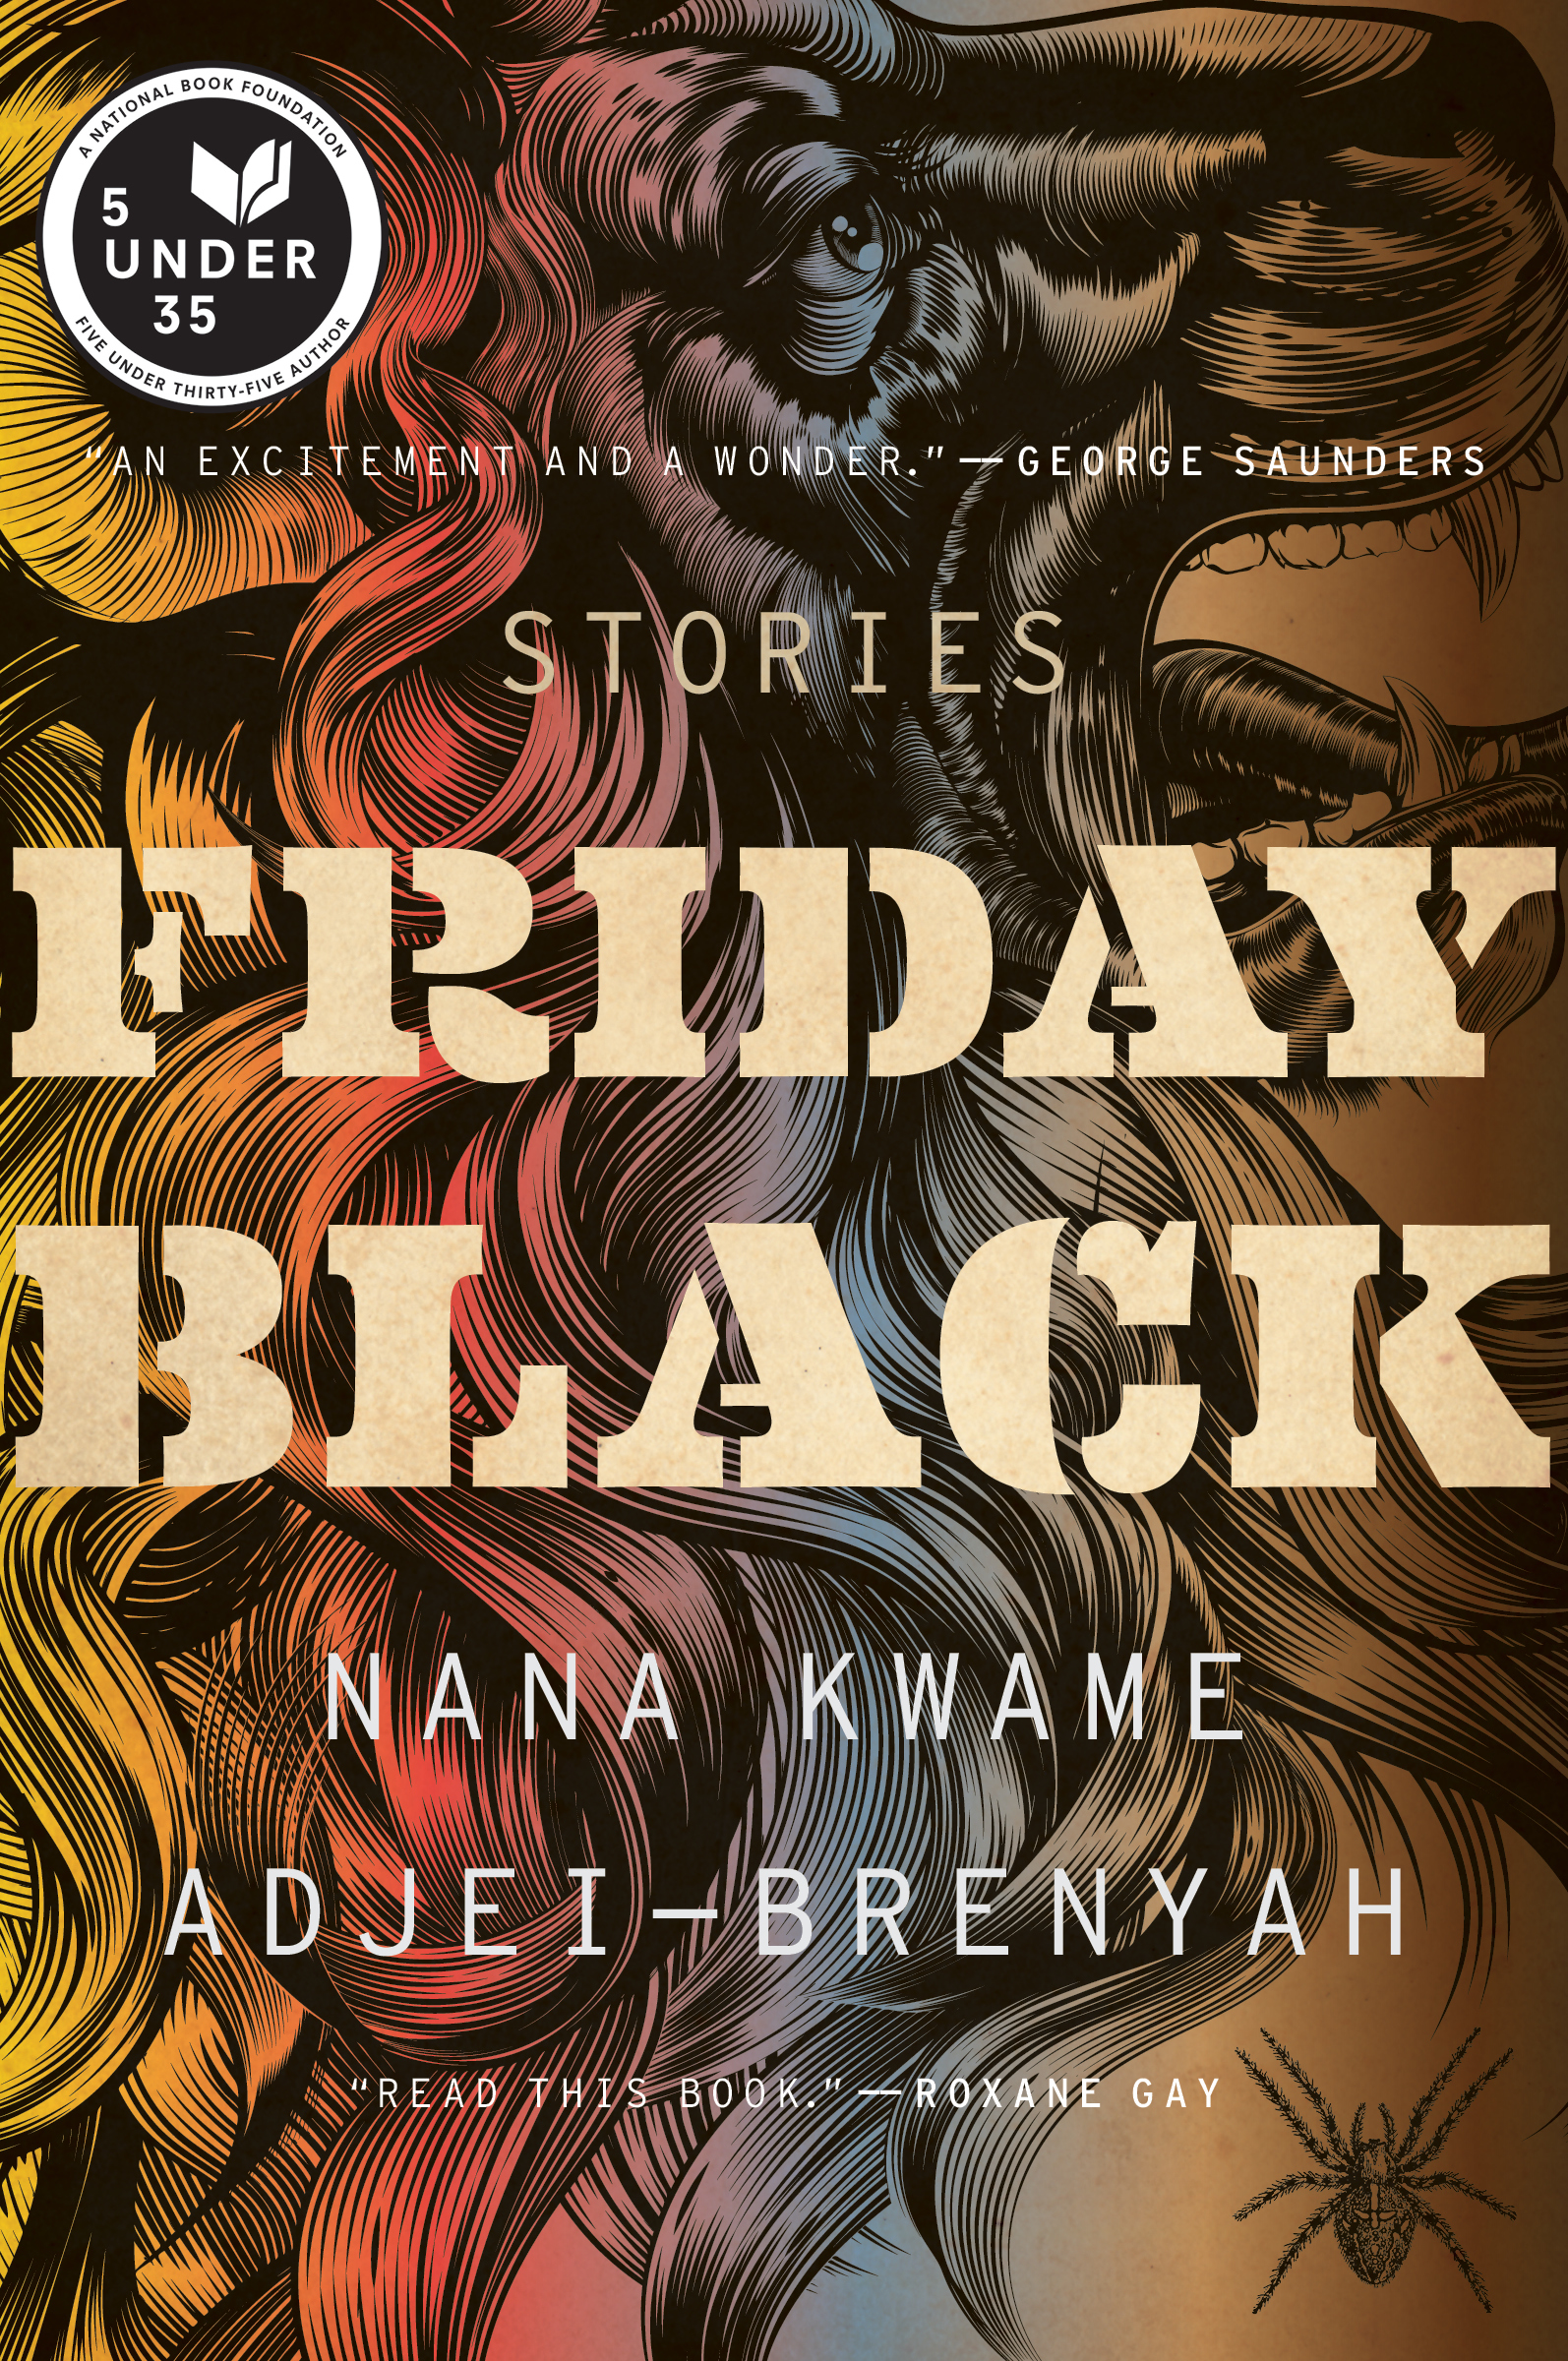 The cover of the book Friday Black